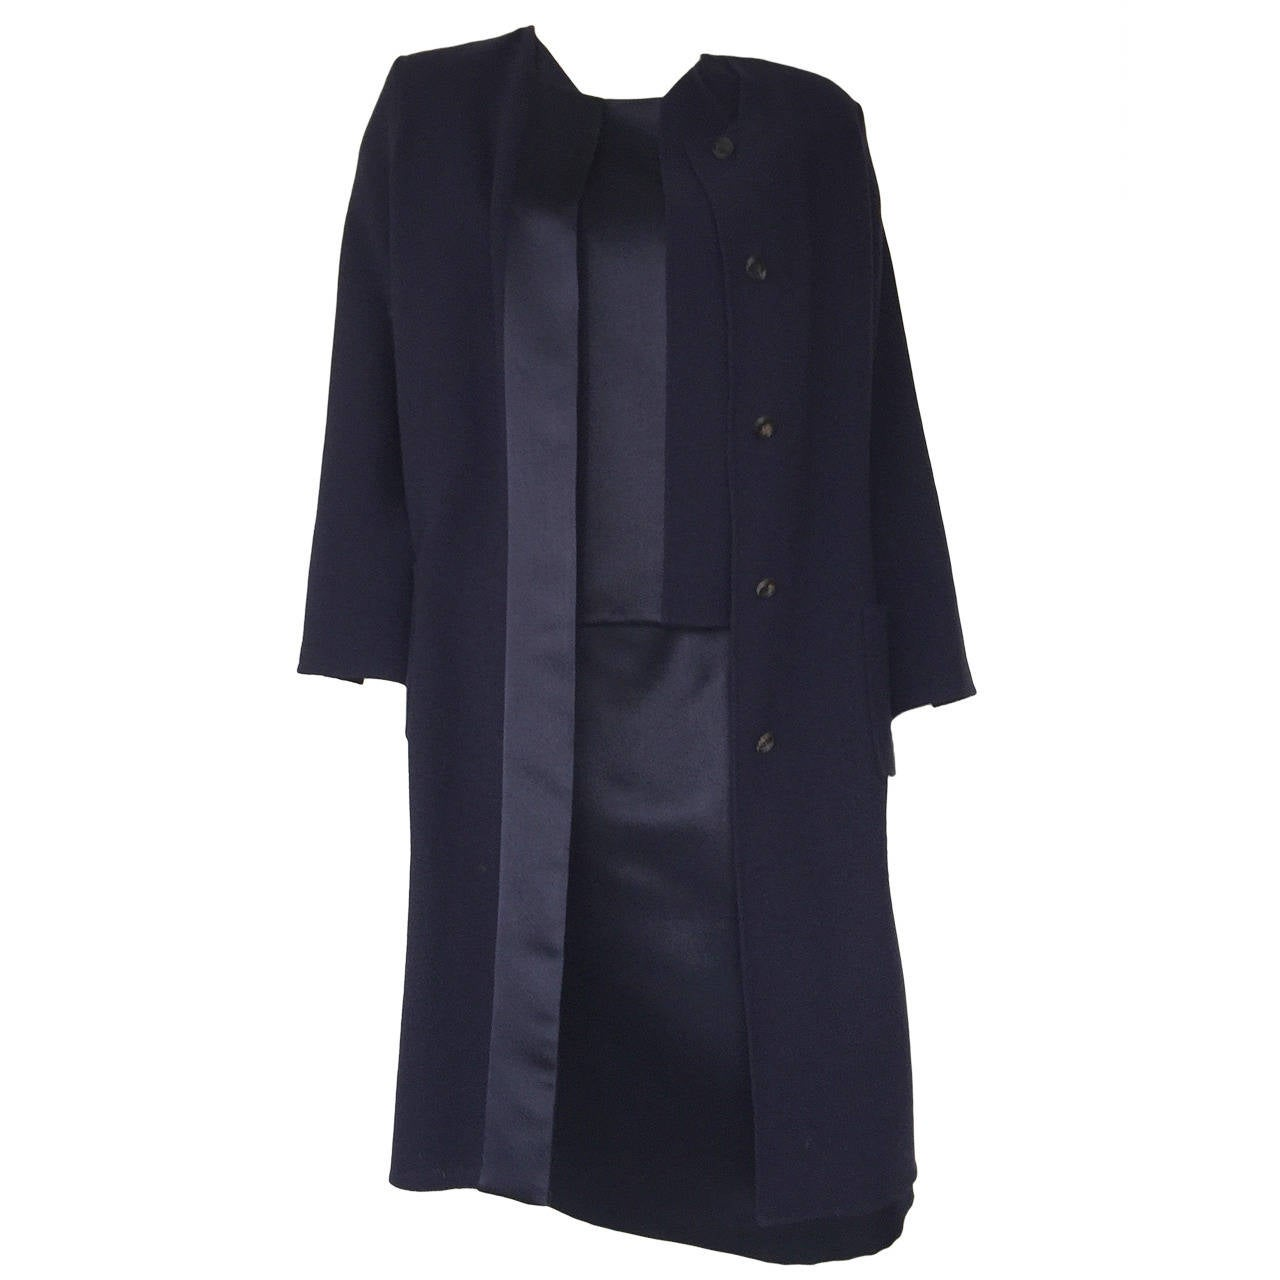 Bill Blass 70s Navy Wool 3 Piece Skirt Suit & Jacket Size Large.